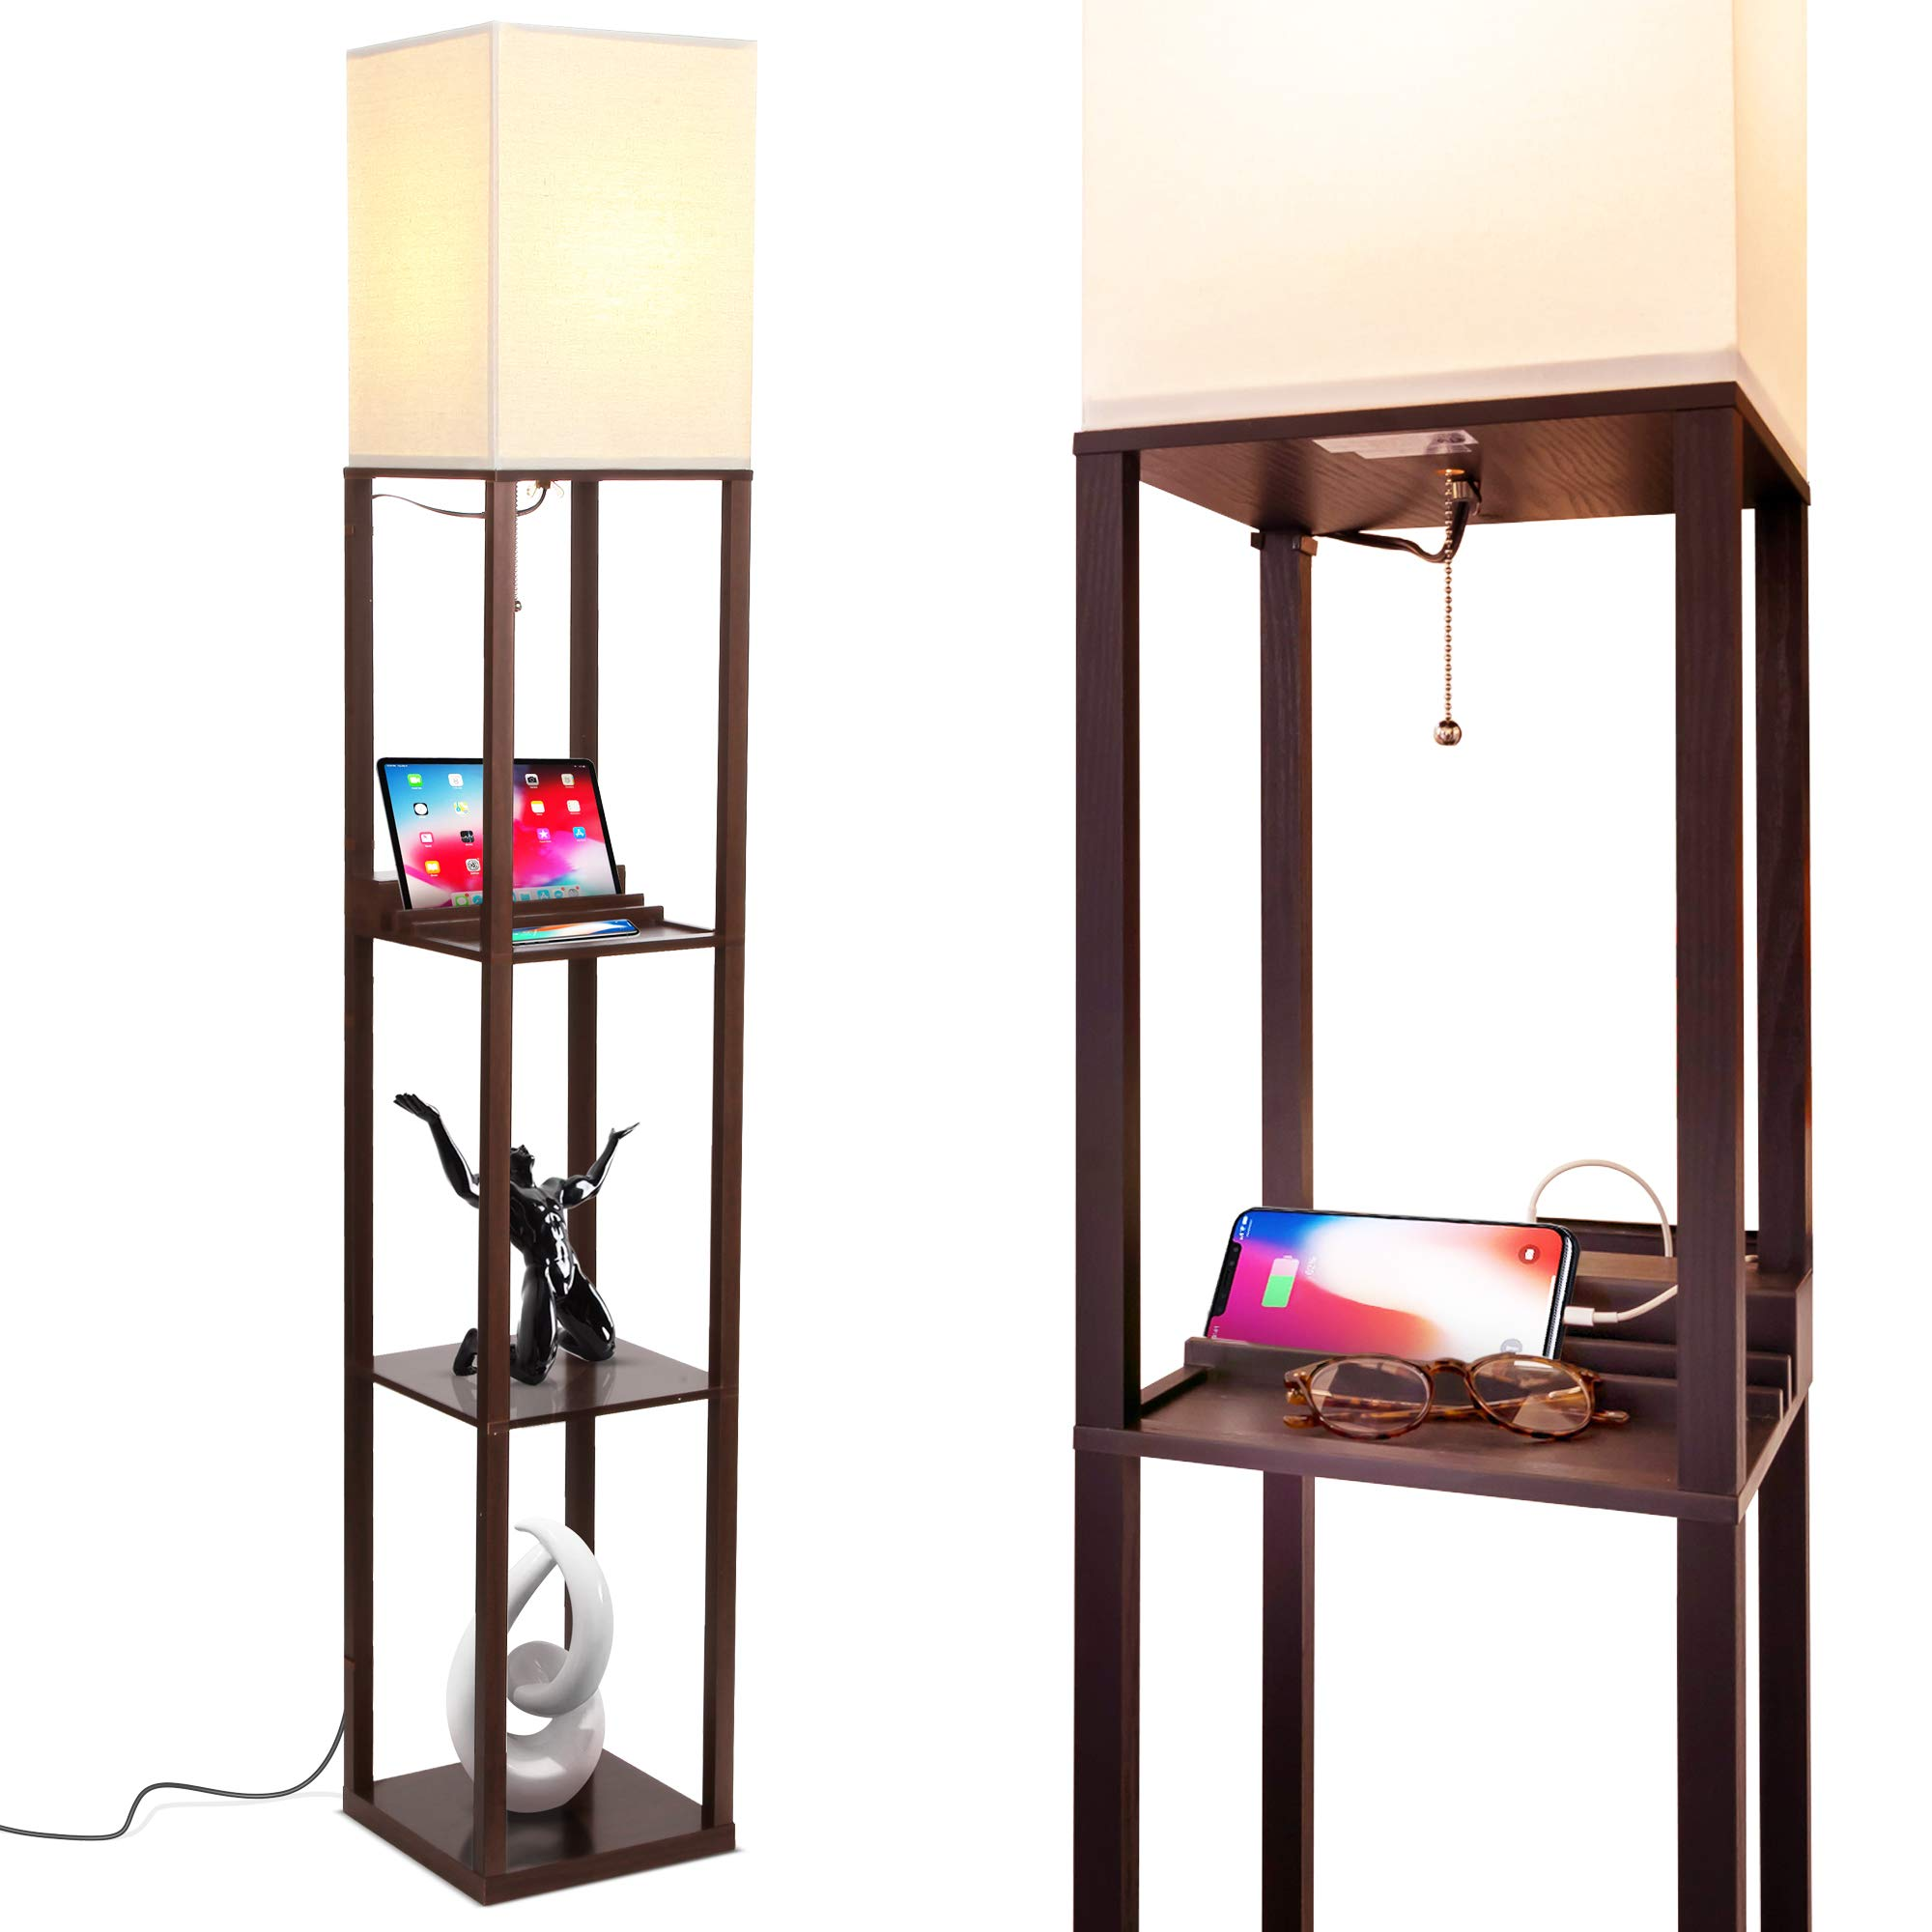 Brightech Maxwell Charging Edition - LED Shelf Floor Lamp for Living Rooms & Bedrooms - Includes USB Ports & Electric Outlet - Modern Standing Light - Asian Display Shelves - Havana Brown by Brightech (Image #1)